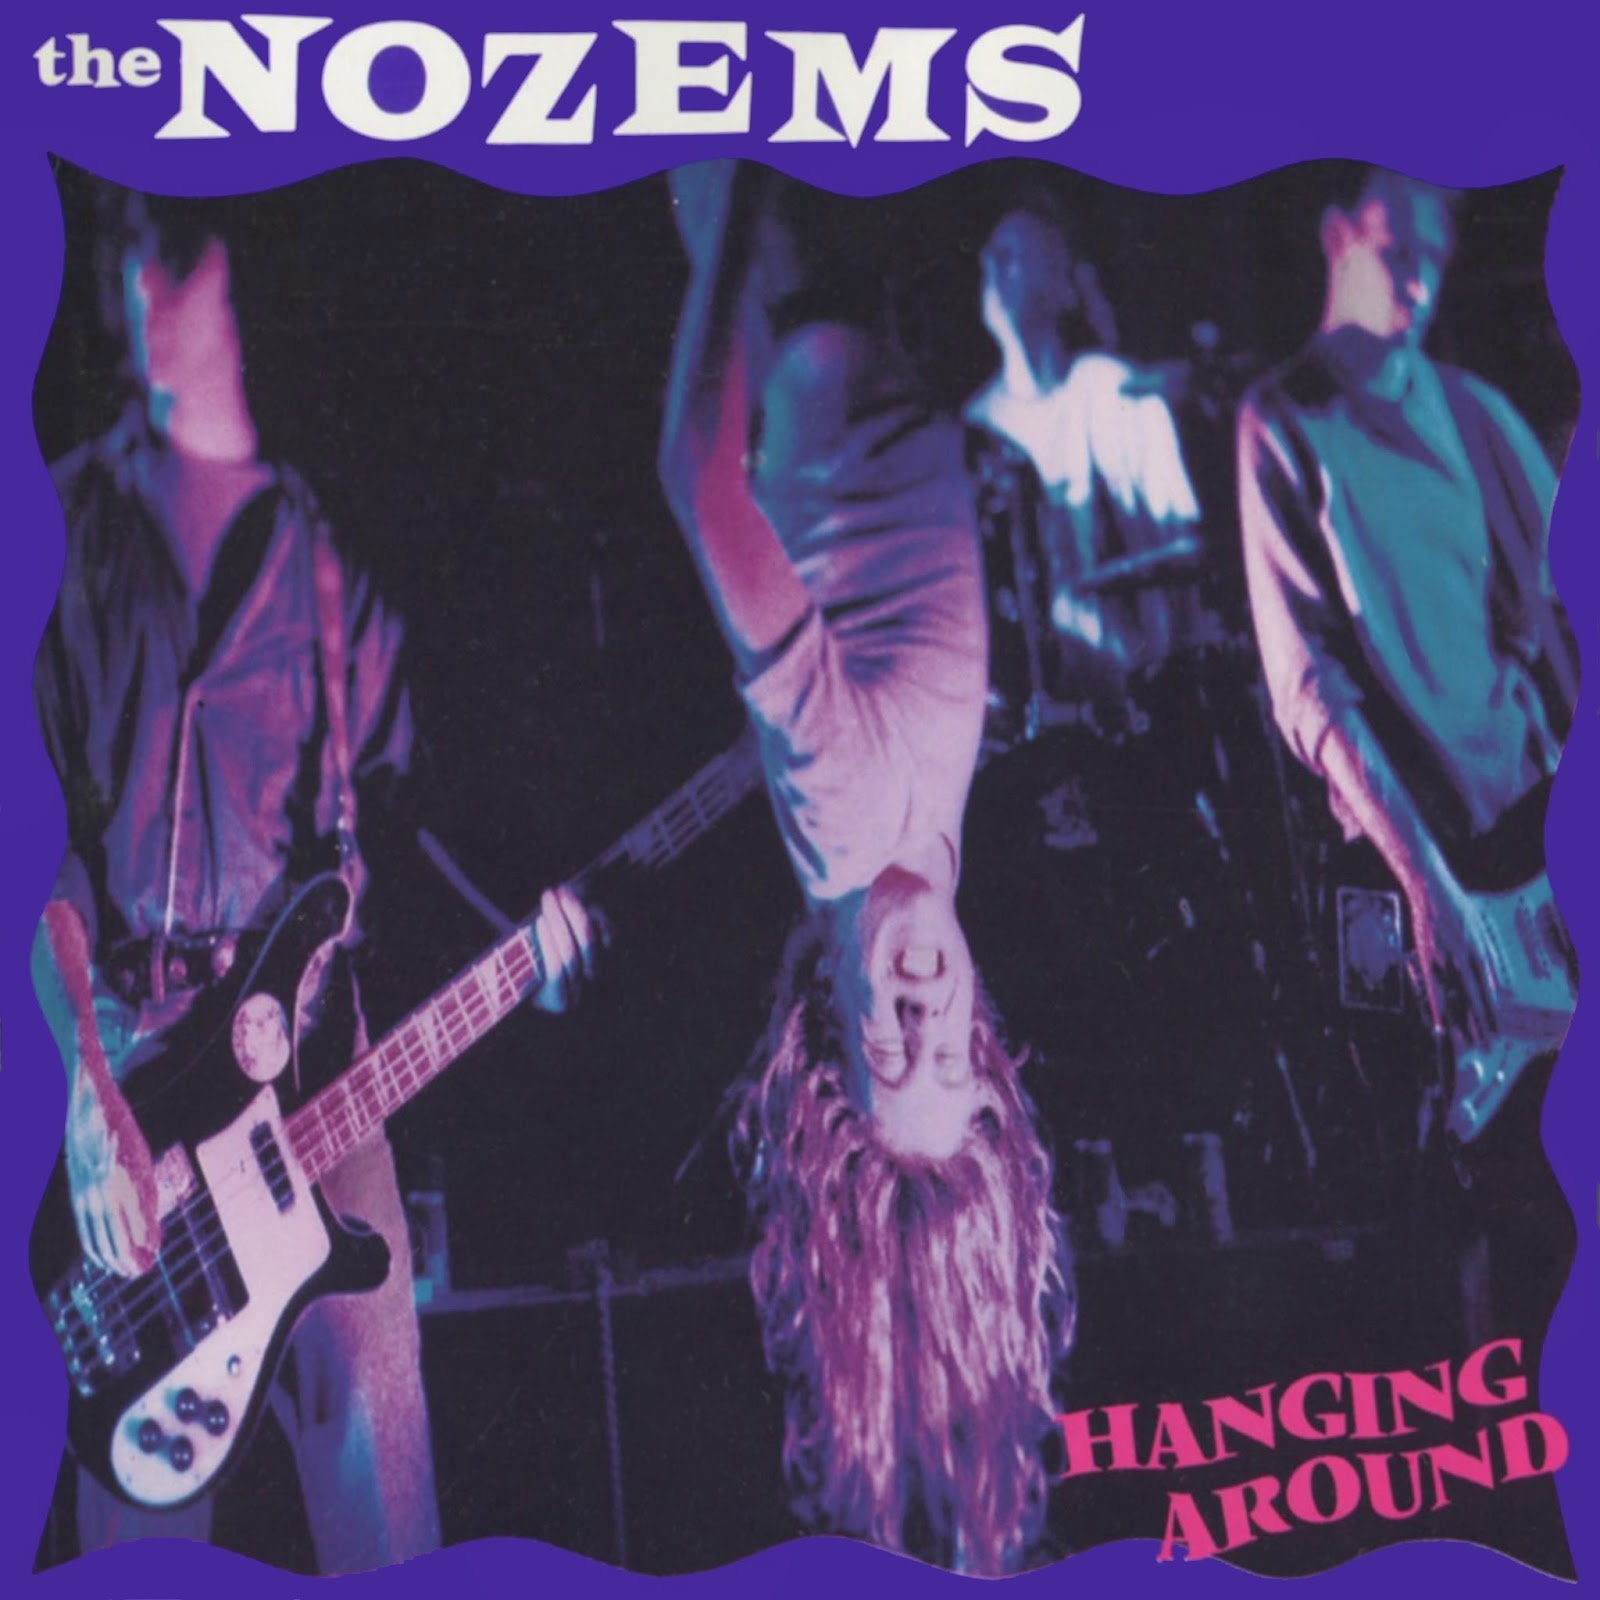 Nozems+-+Hanging+Around+front.jpg